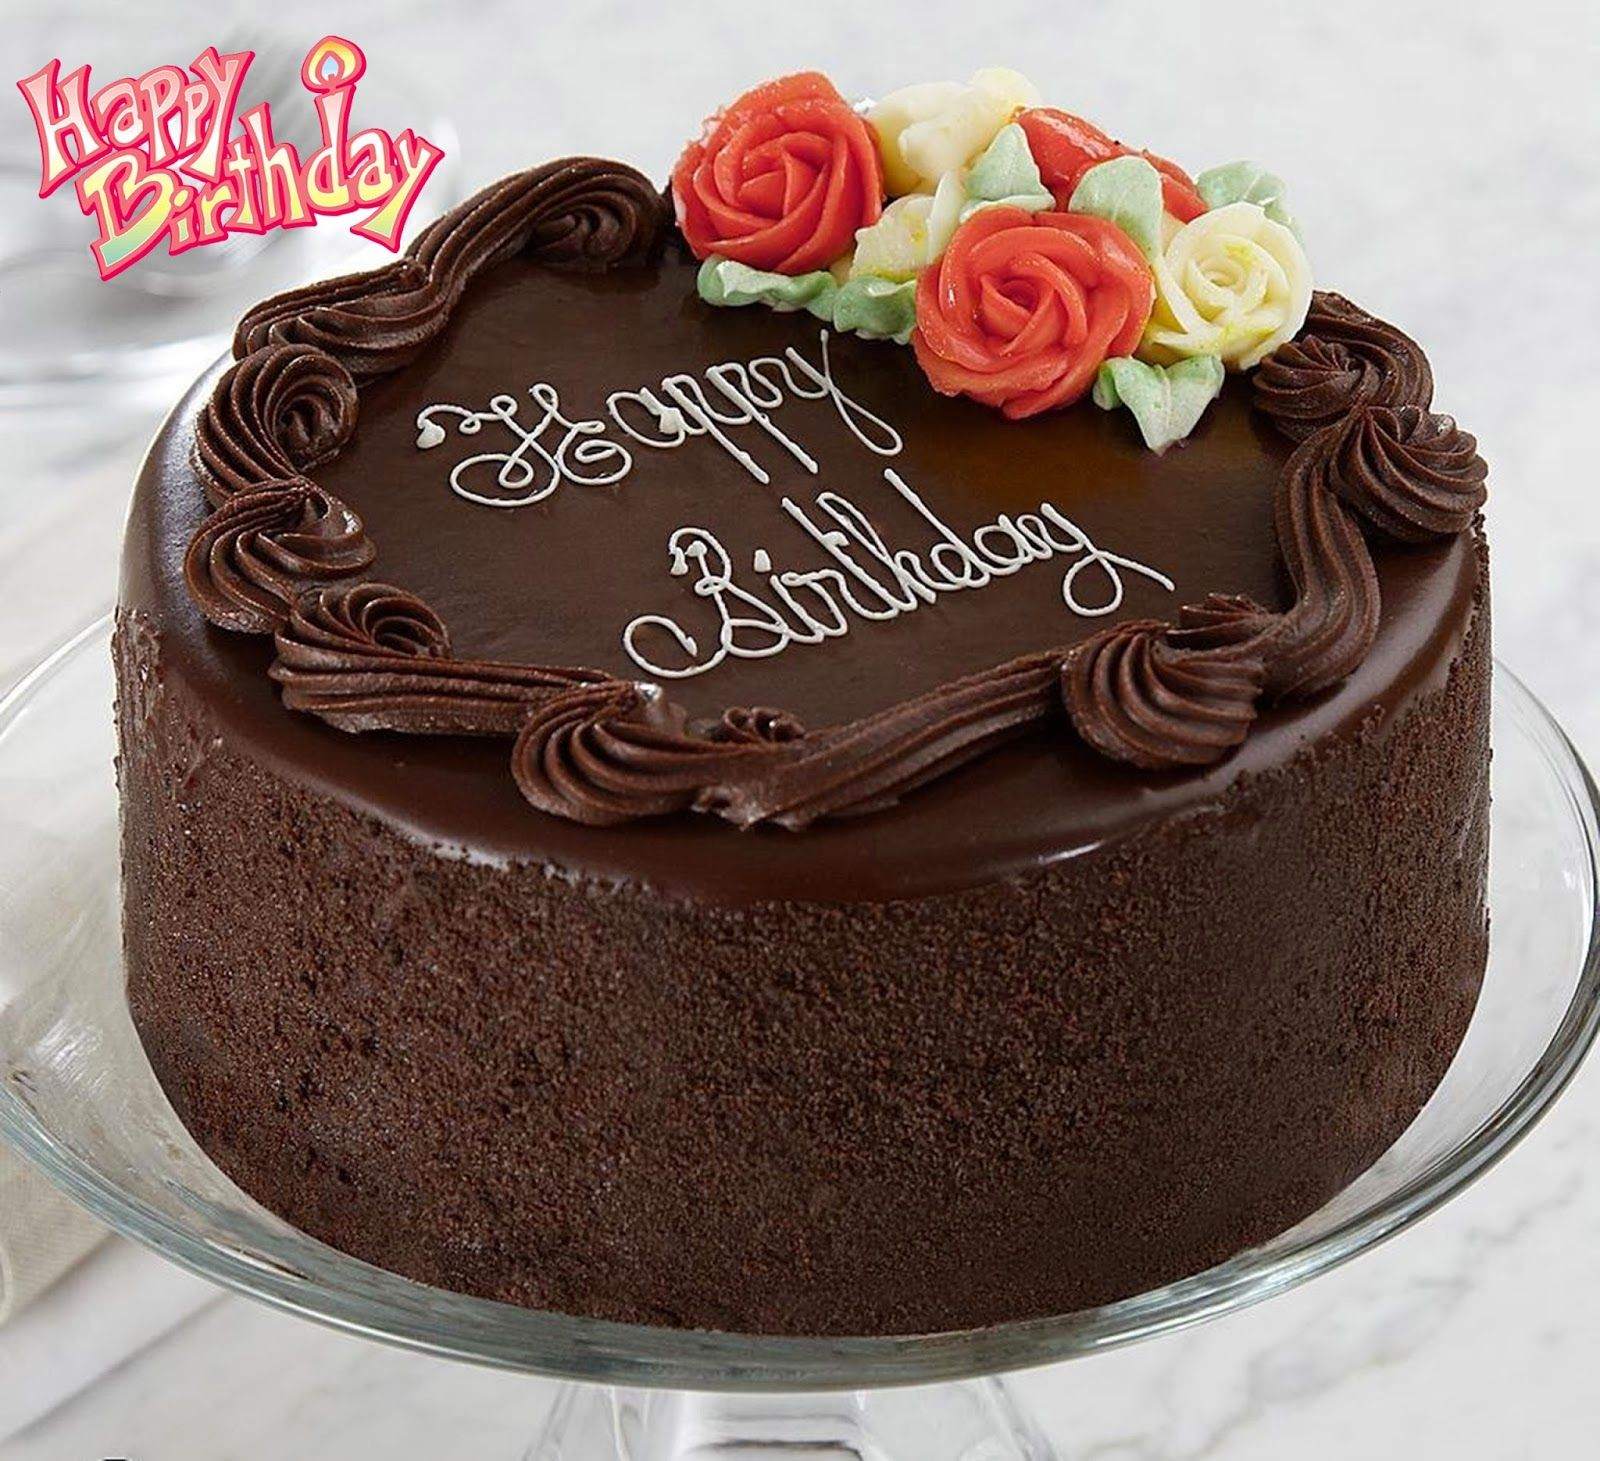 Happy_birthday-chocolate-cakes-with-quotes